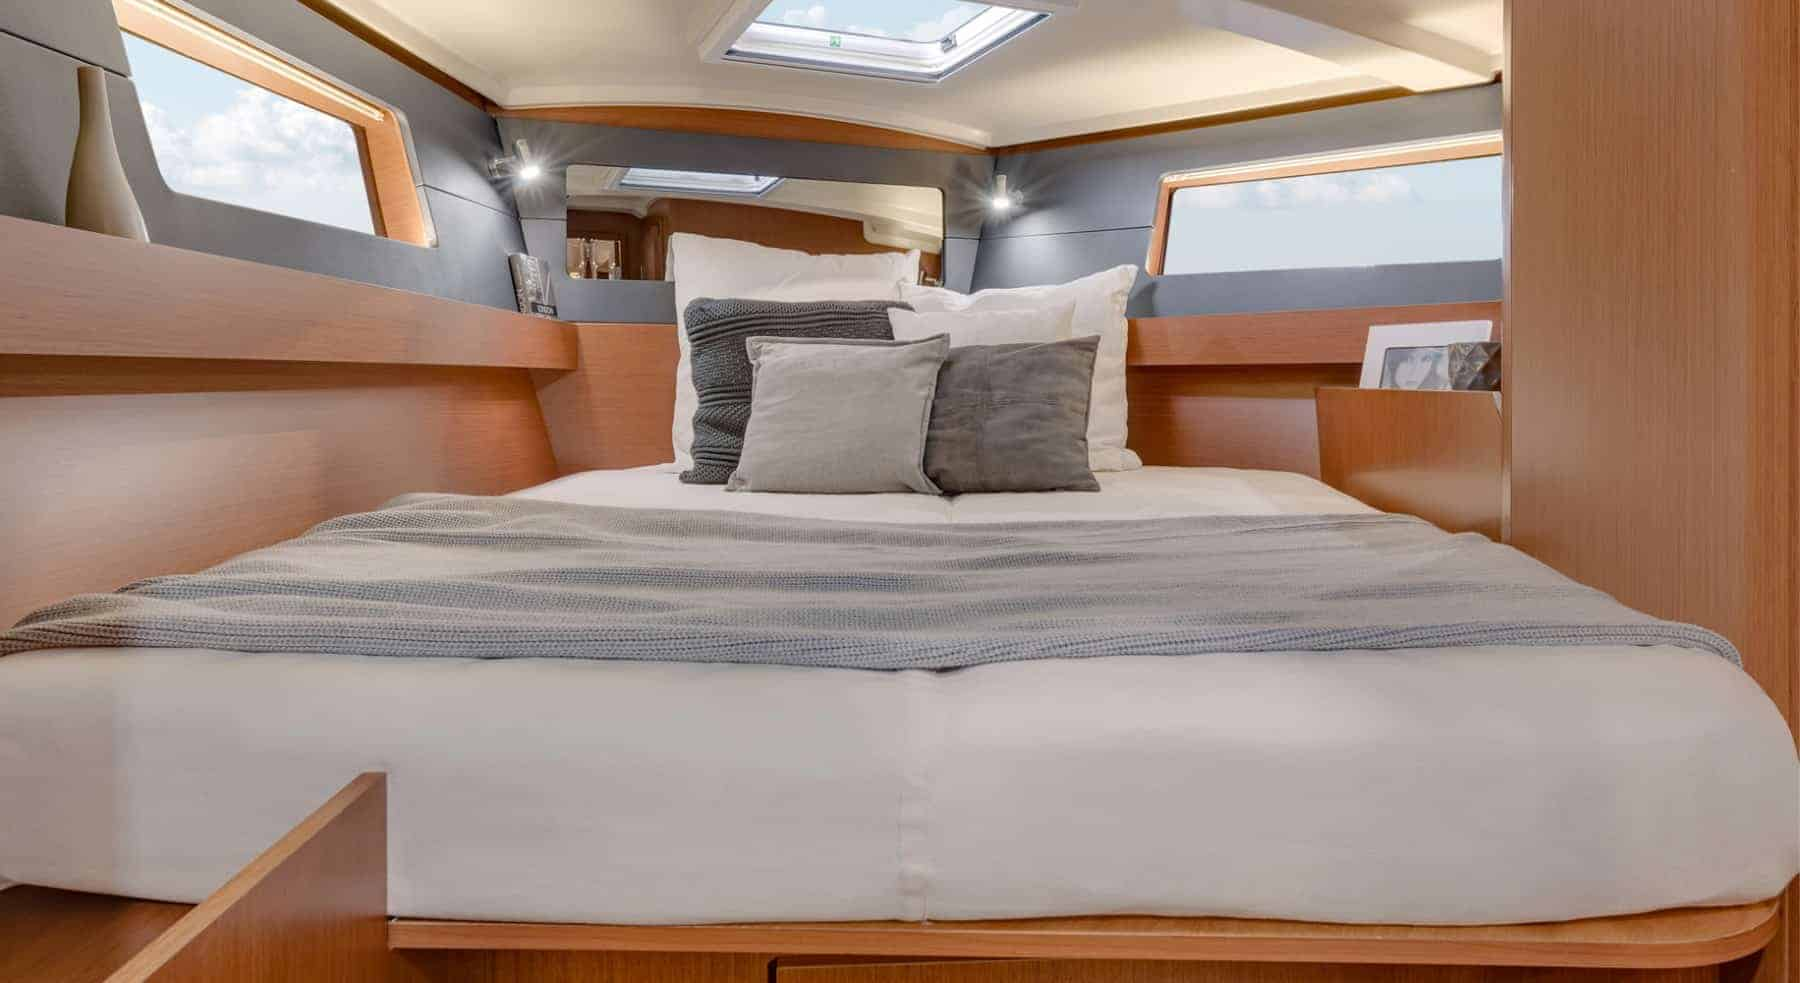 Comfy and massive double bed option in the cabins